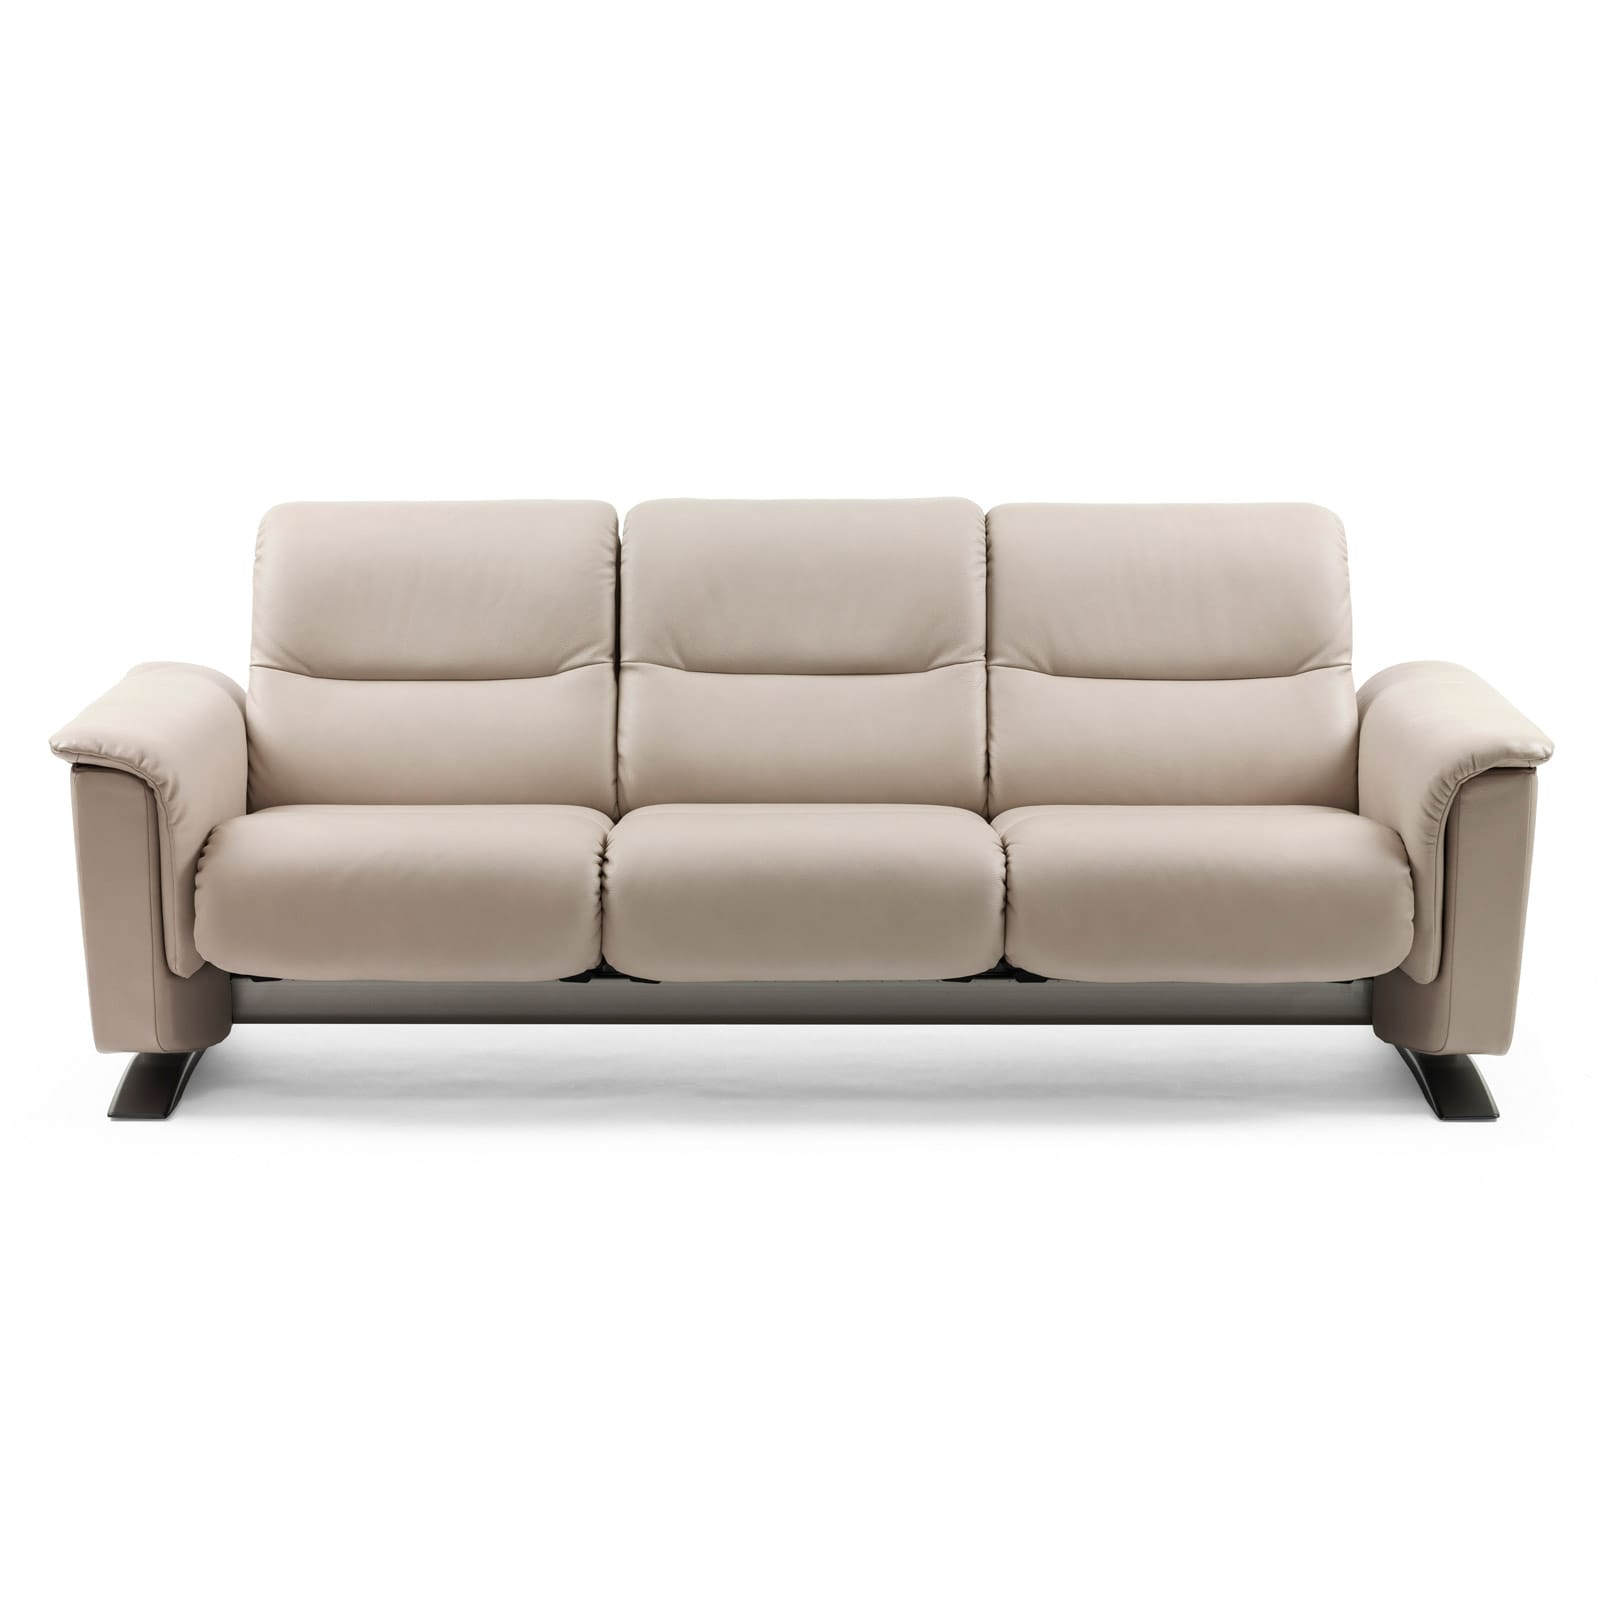 io metro sofa review big and tall reclining stressless 3 sitzer panorama beige